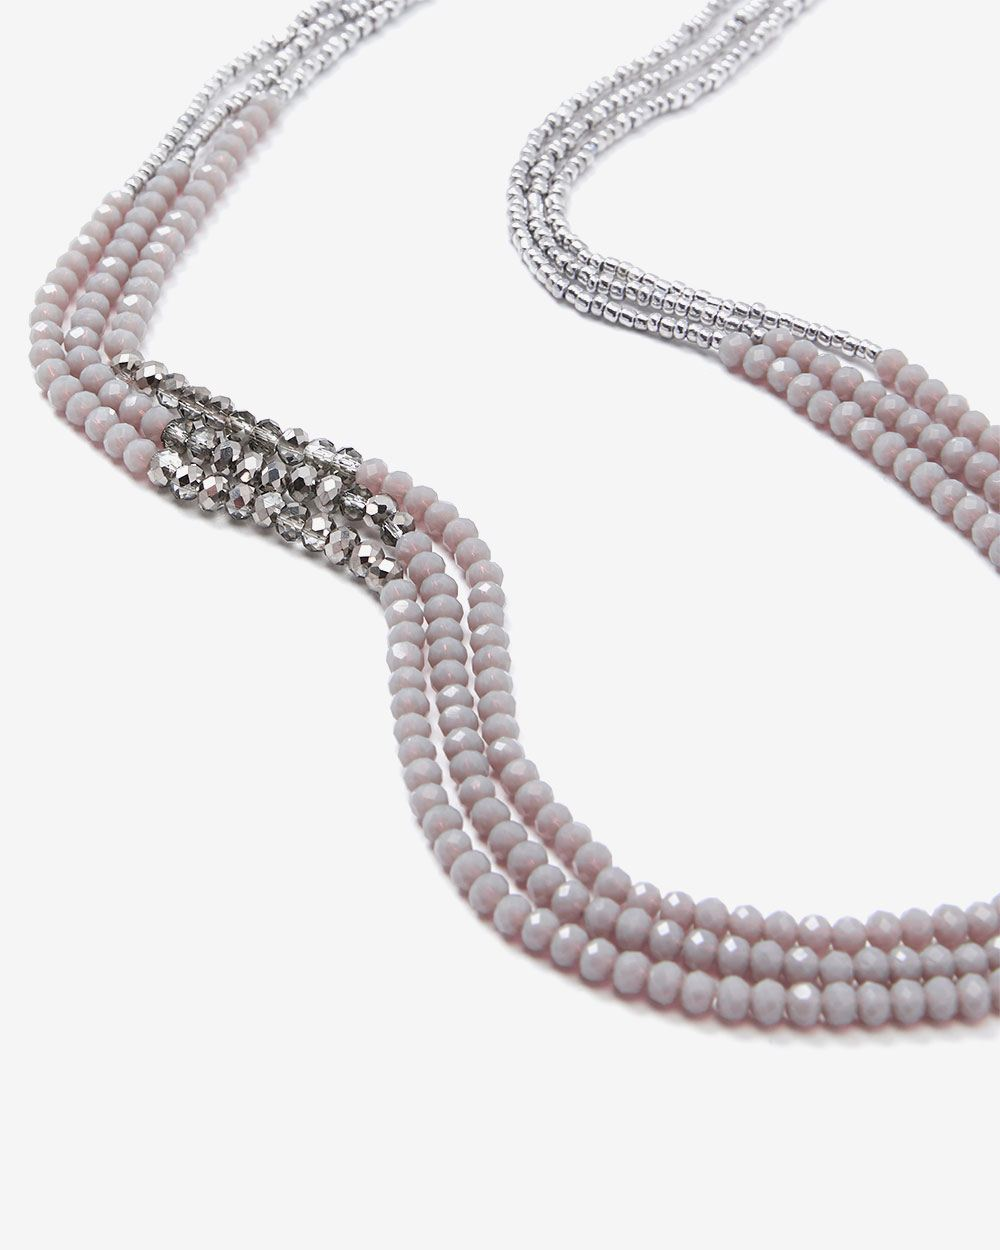 3-row Faceted Beads Necklace